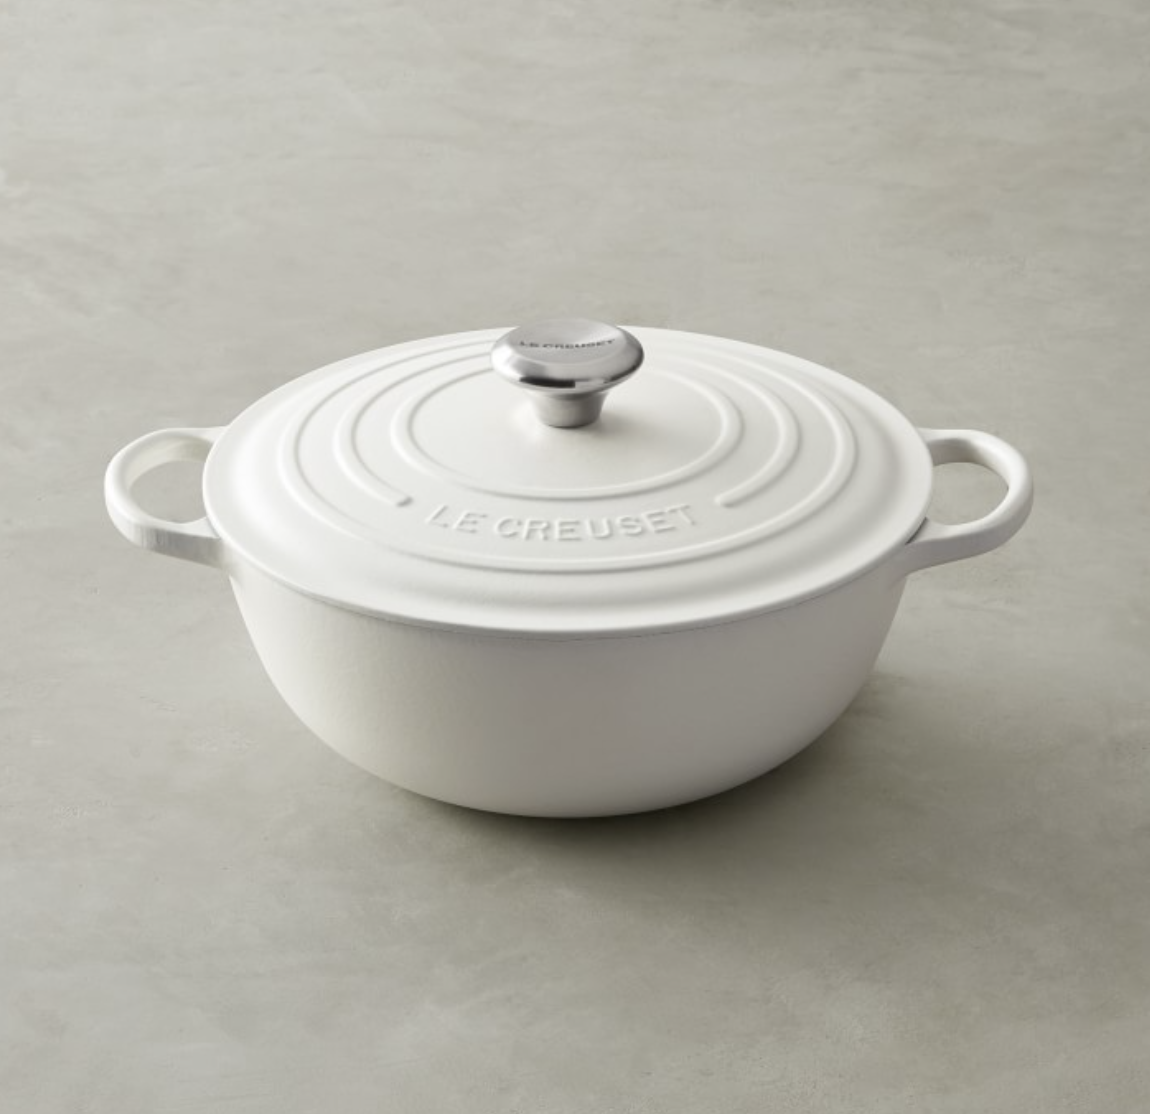 This Really Good Sale On Le Creuset Has Made My Friday